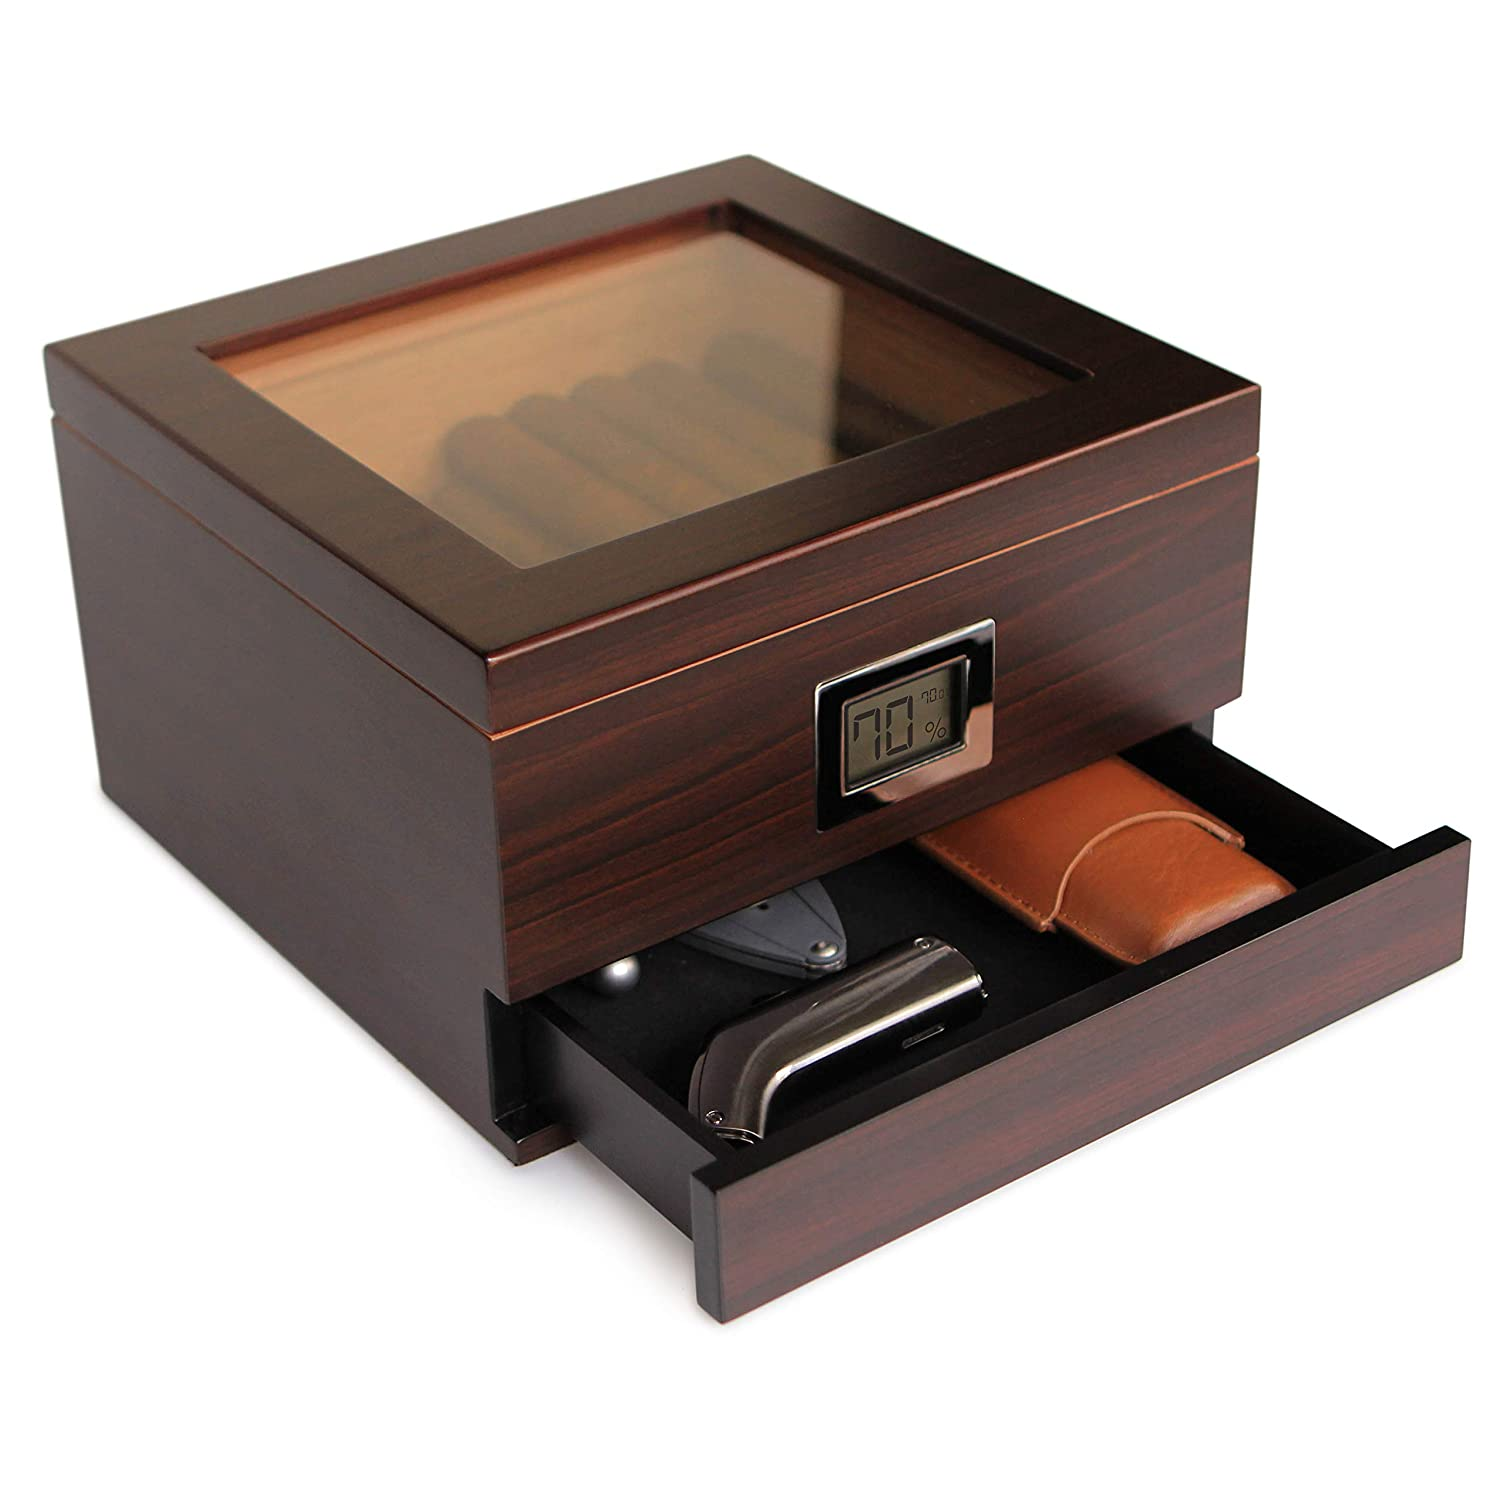 Glass Top Handcrafted Cedar Humidor with Front Digital Hygrometer, Humidifier Gel, and Accessory Drawer - Holds (25-50 Cigars) by Case Elegance